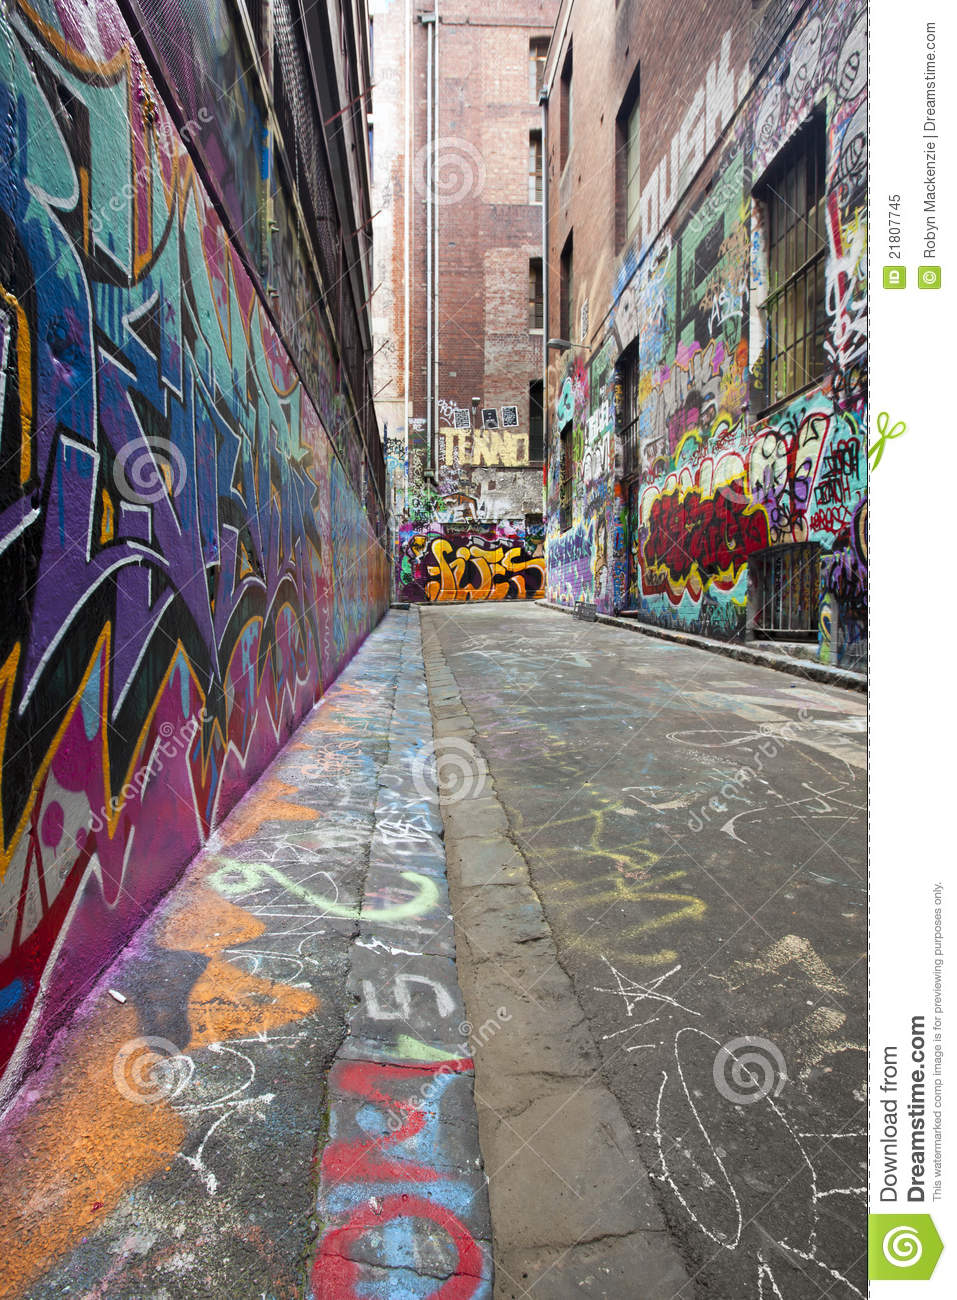 graffiti alley stock image  image of alleyway  alley